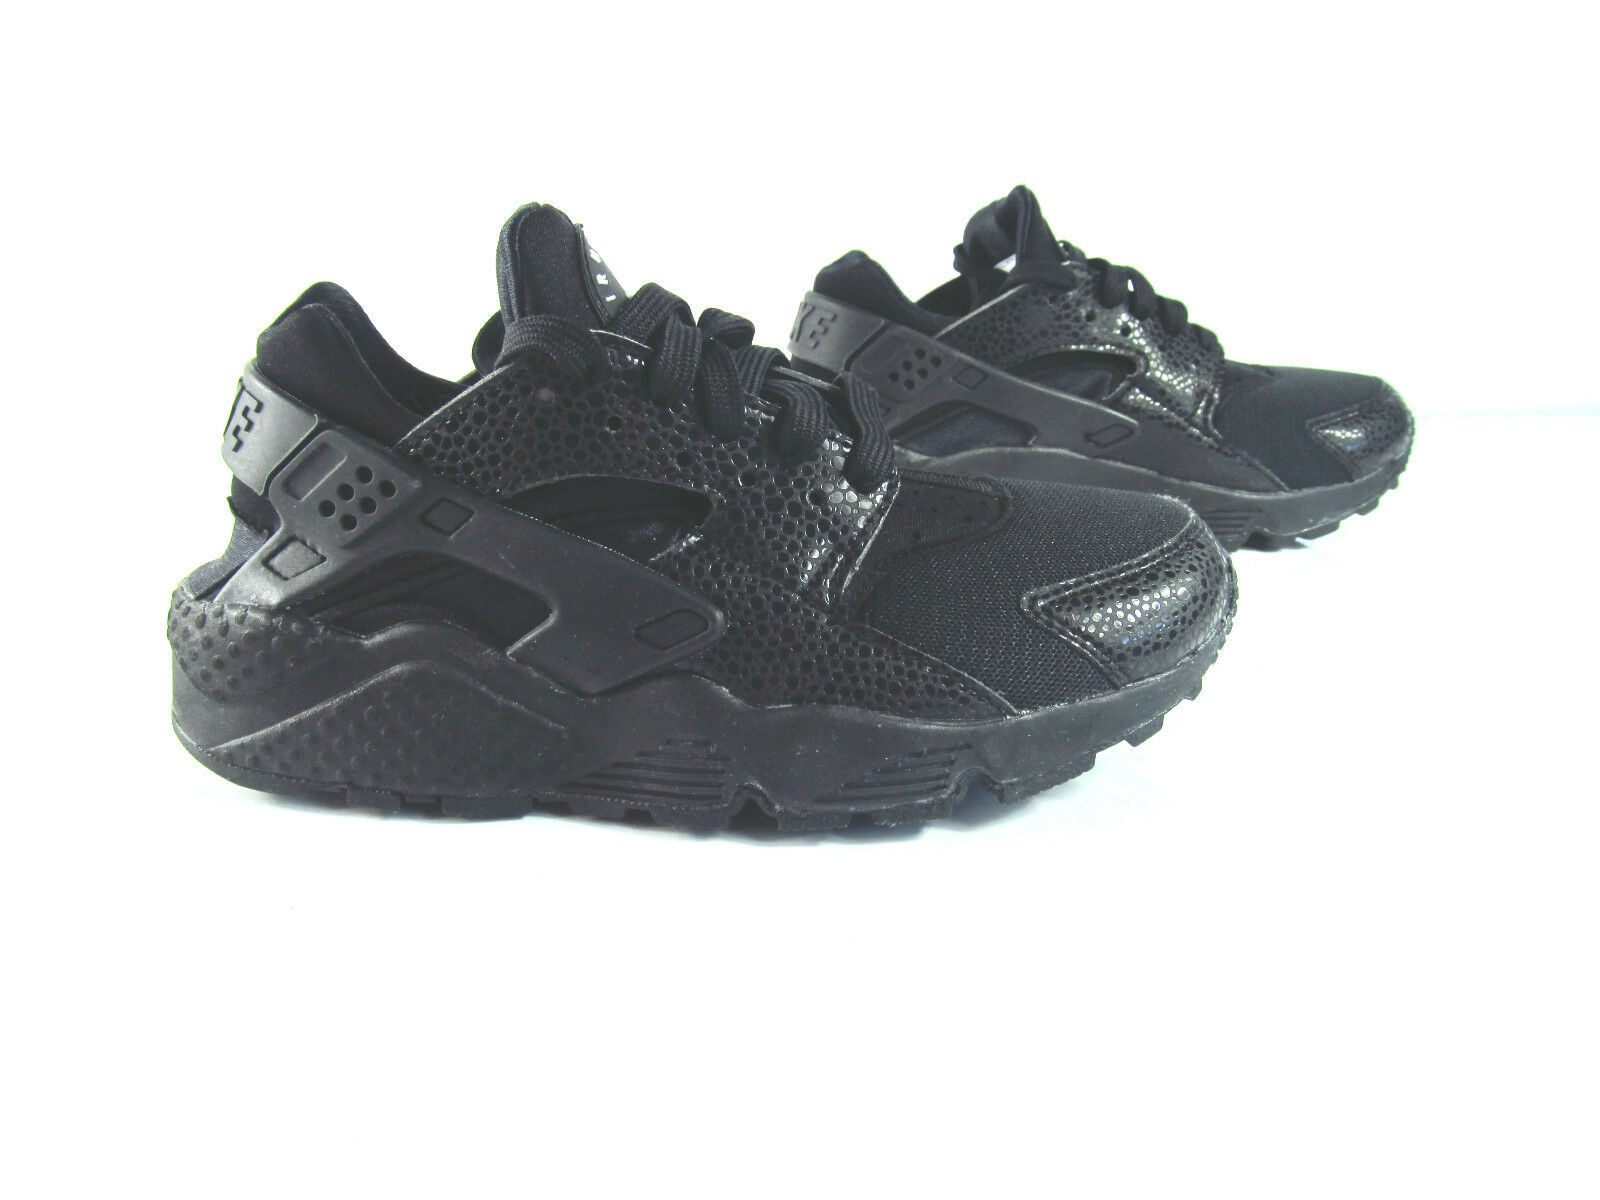 Nike Lizard Air Huarache Triple Noir Lizard Nike Sneaker Eur_35.5 US_5 UK_2.5 a6e318